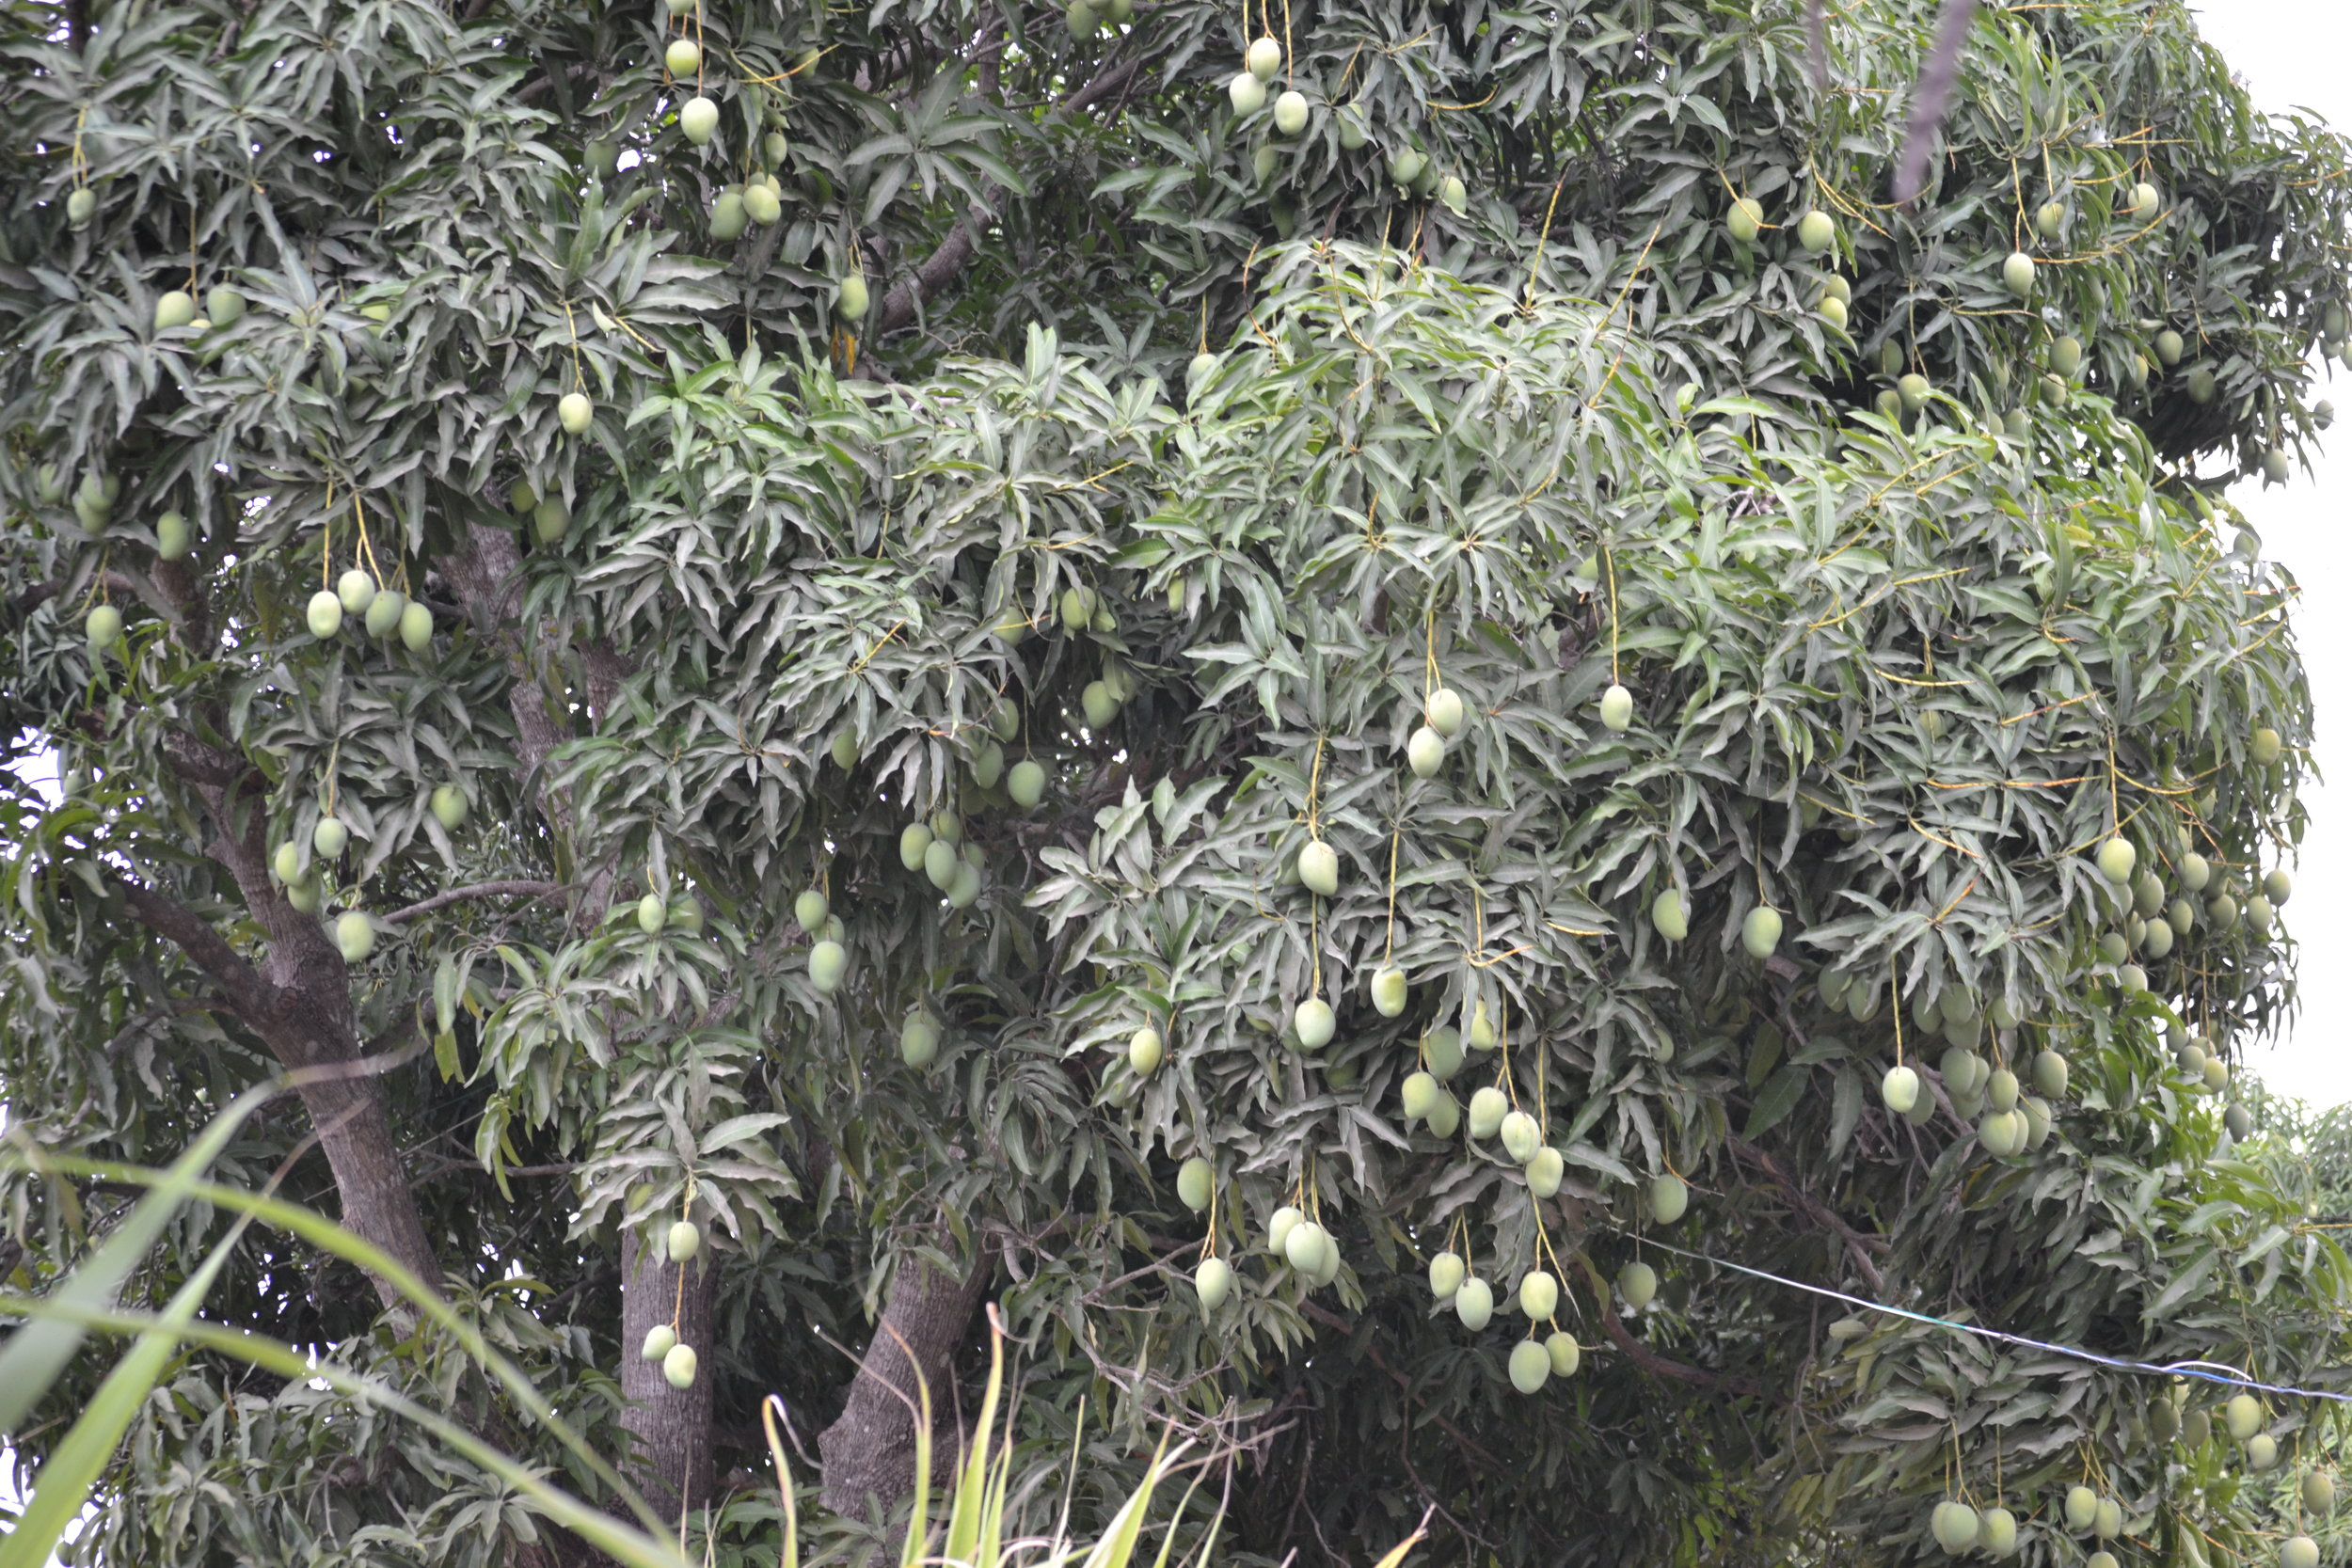 Despite the drought, well established mango trees produce bountiful fruit.